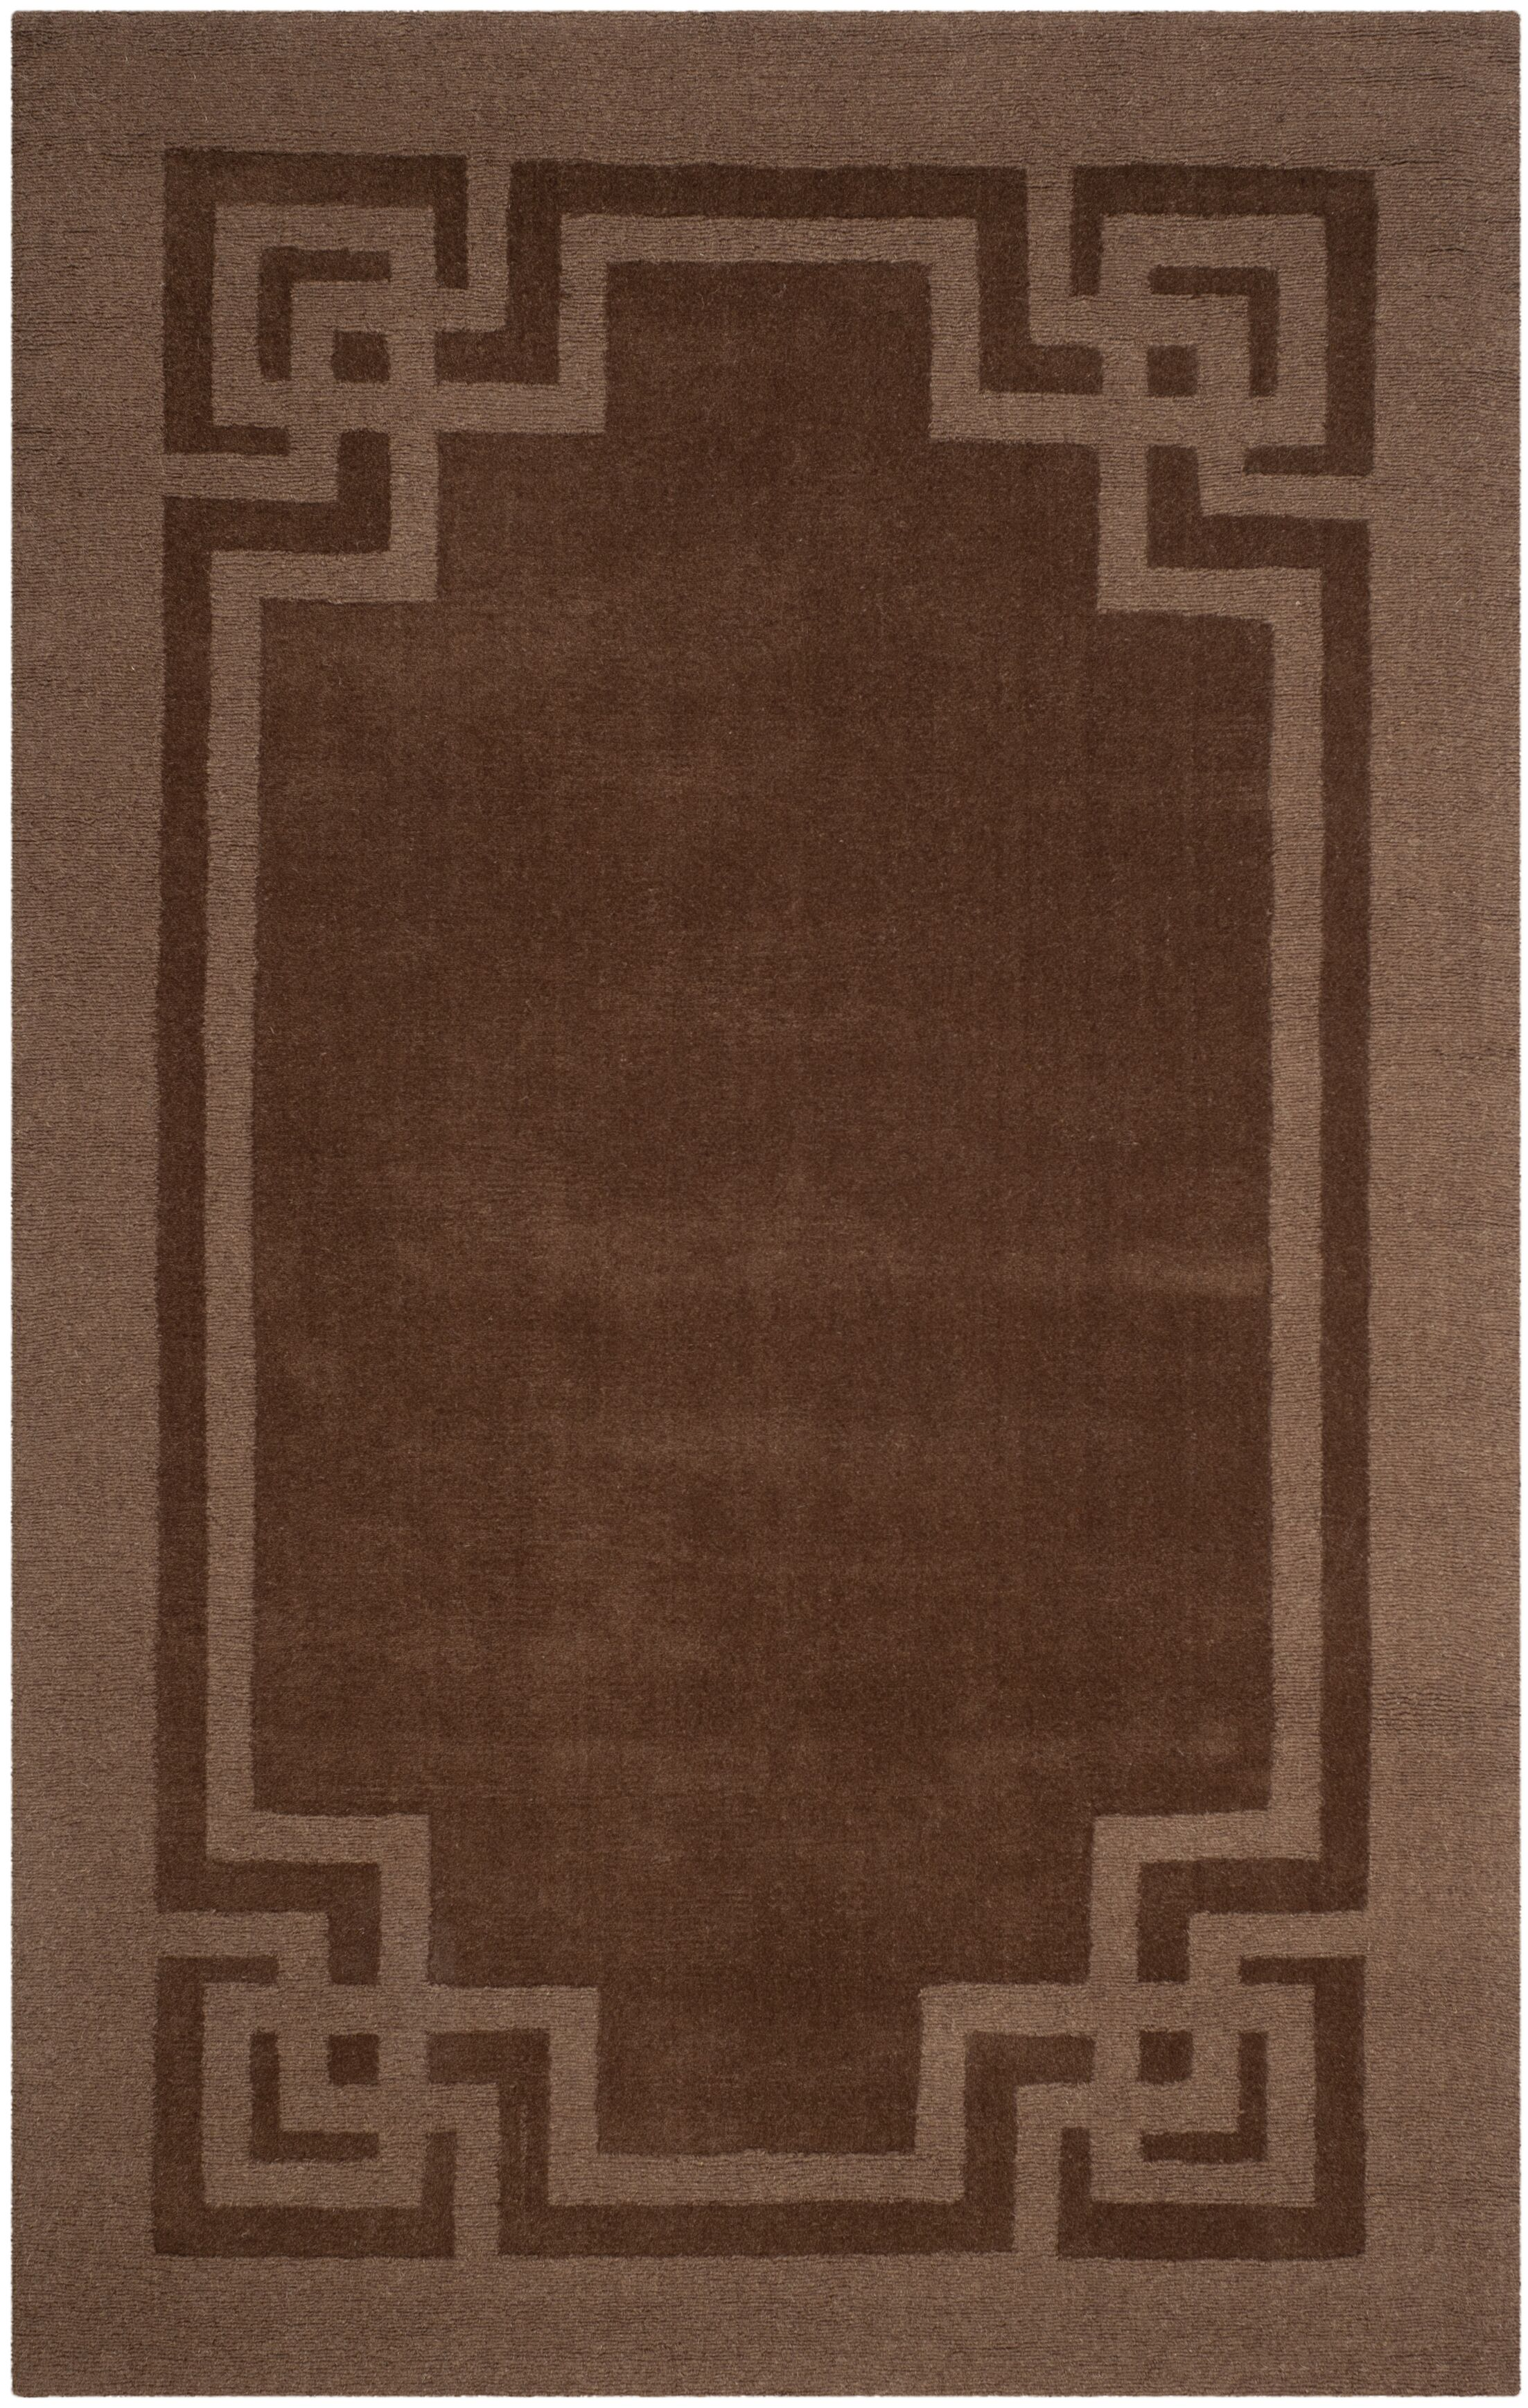 Deco Frame Hand-Woven Bay Colt Area Rug Rug Size: Rectangle 8' X 10'